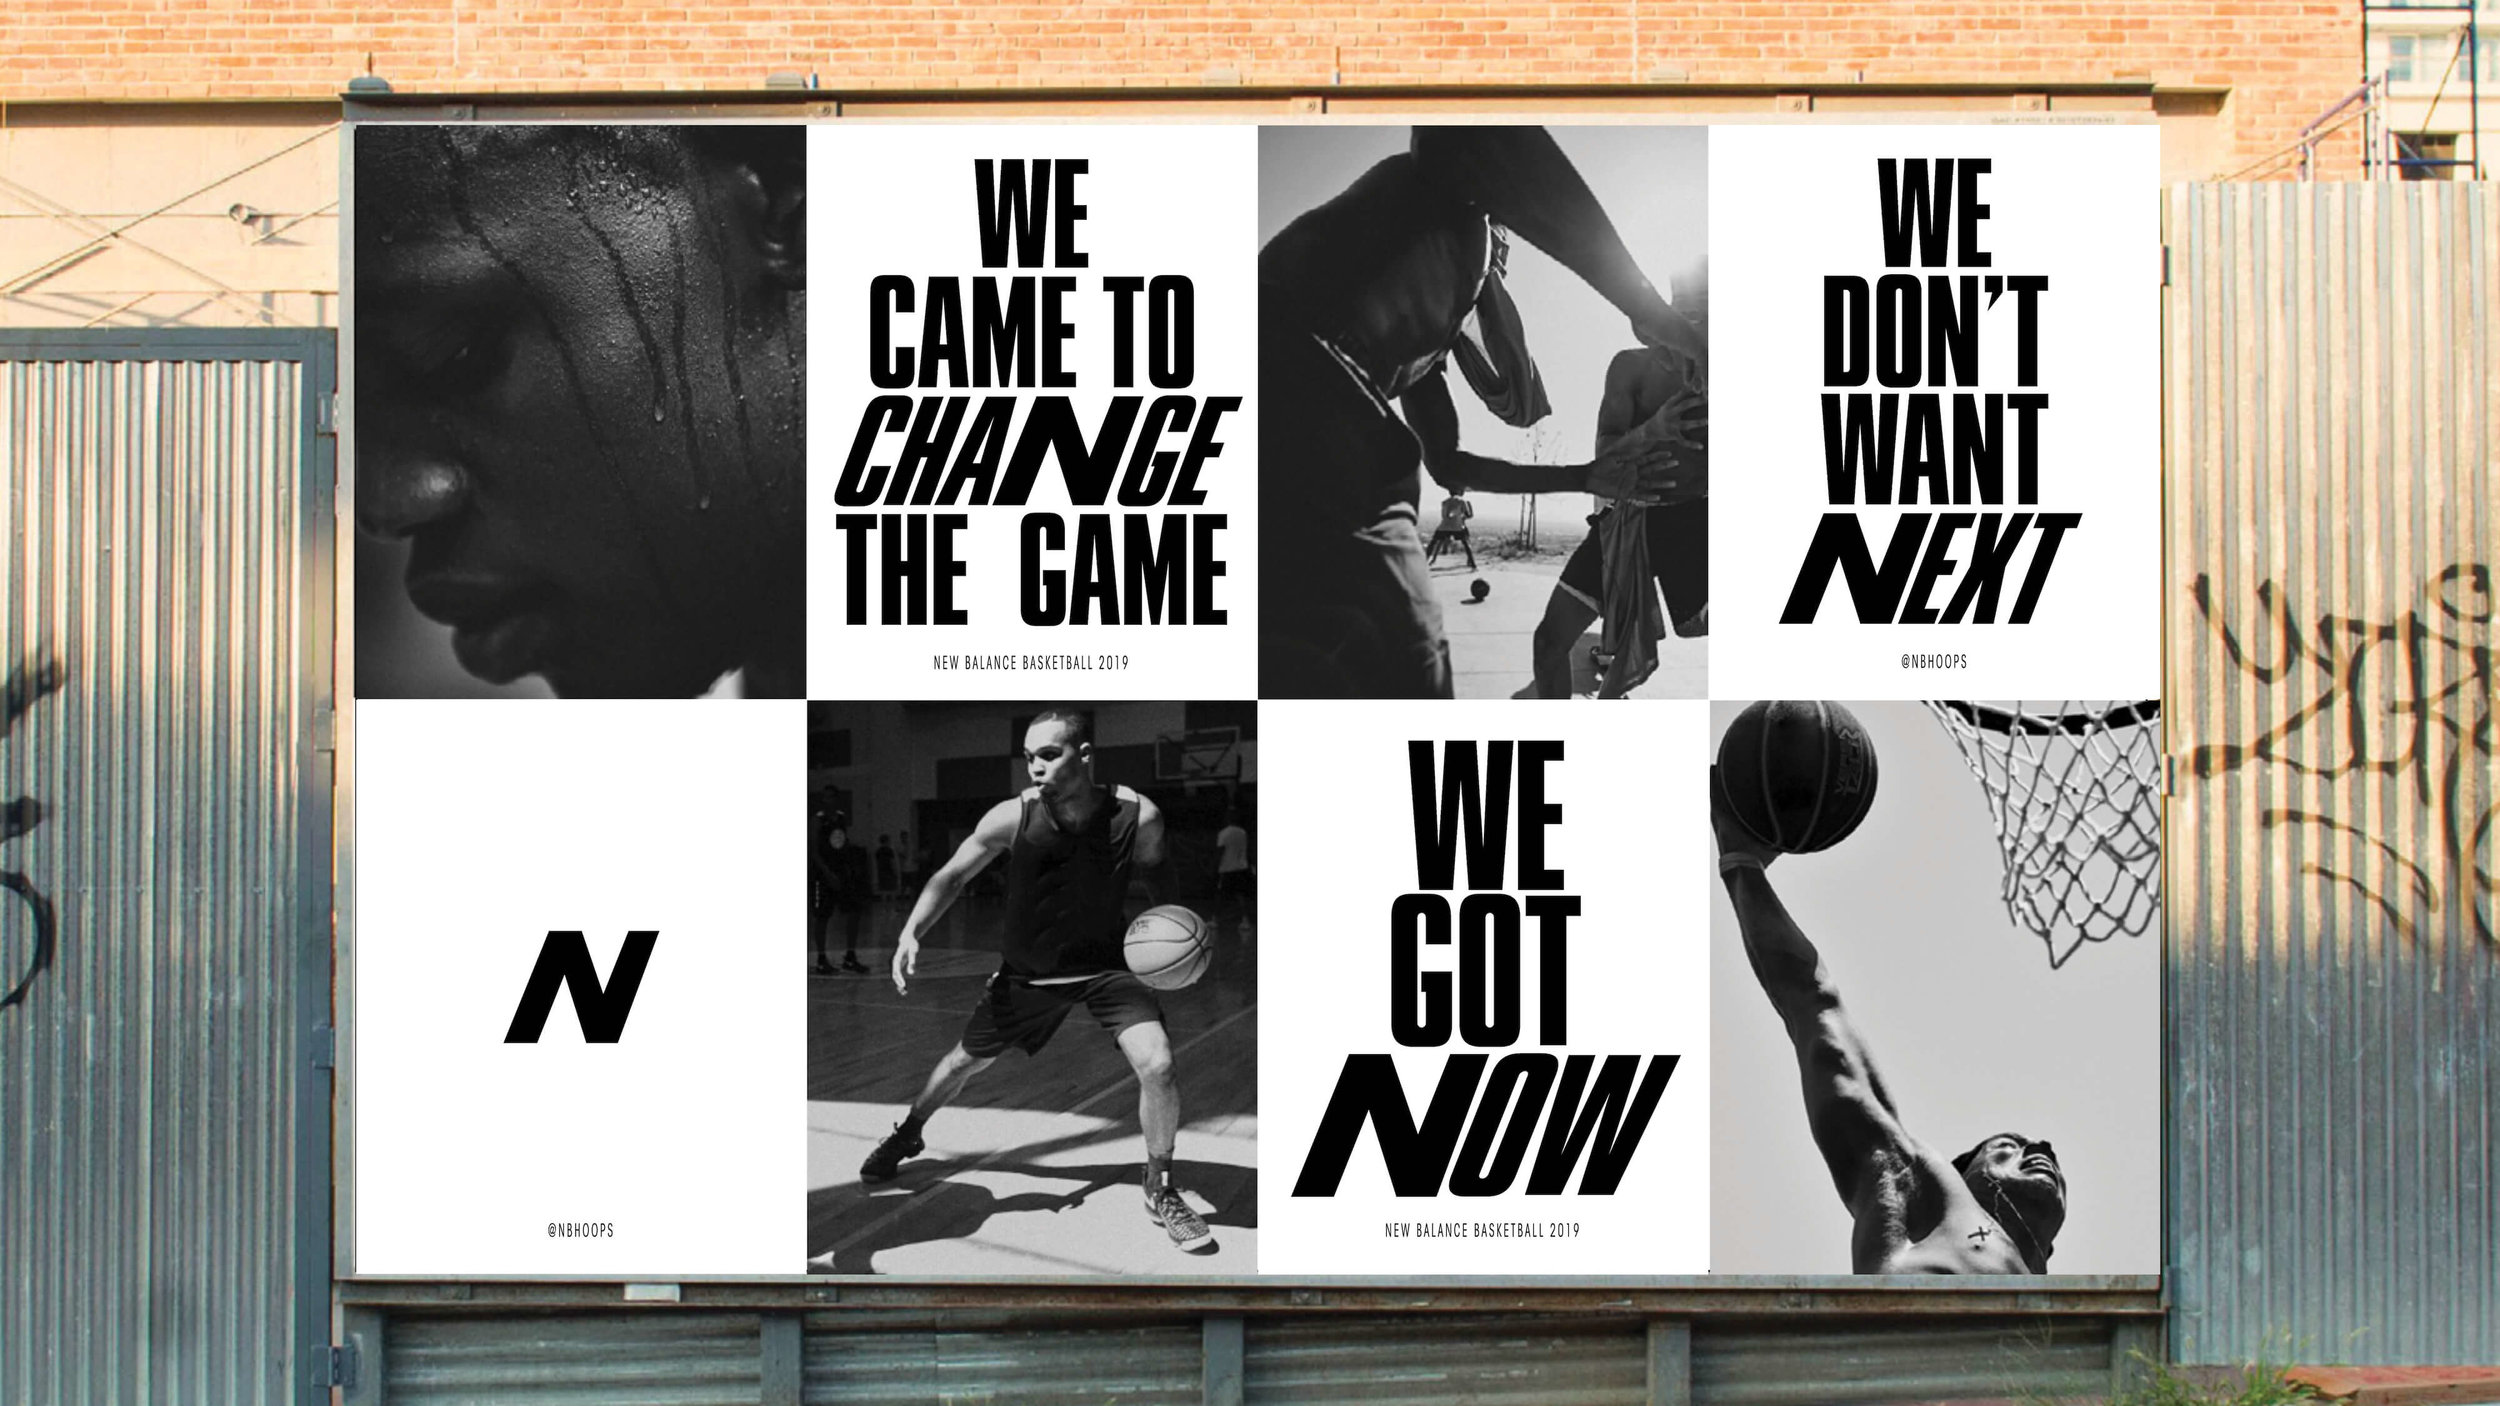 A sample of Alex's work: We came to change the game; we don't want next; we got now.